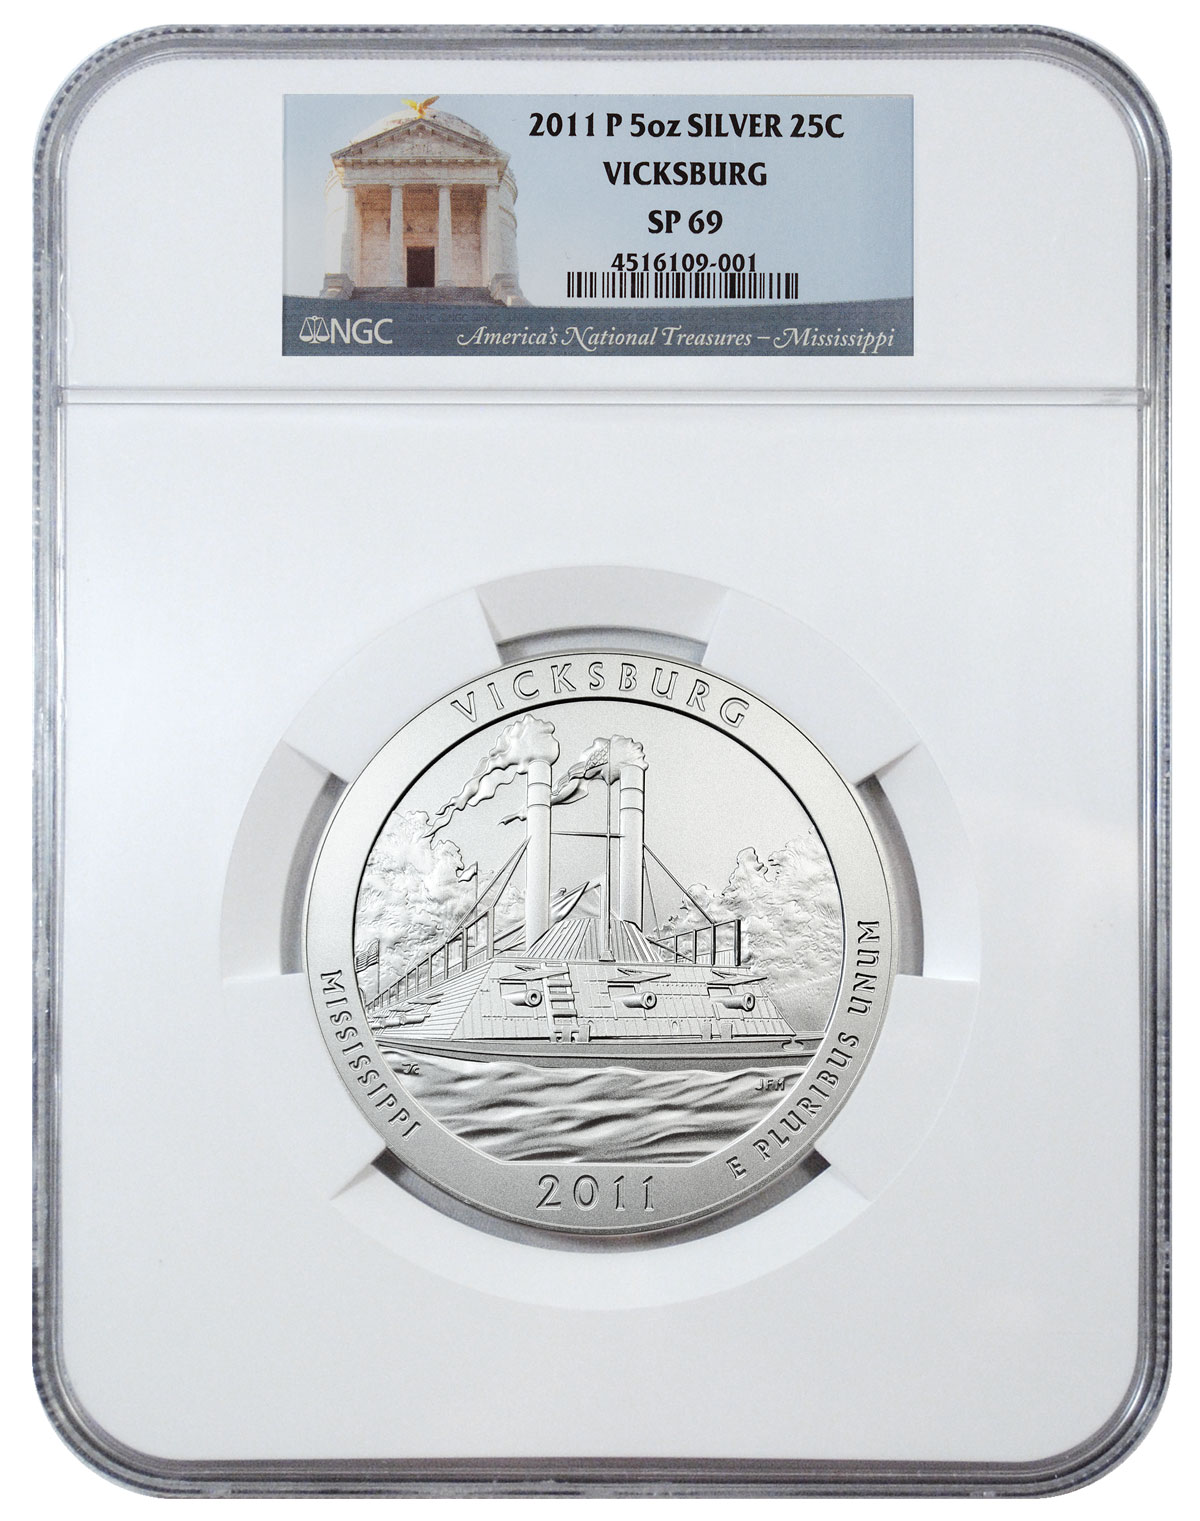 2011-P Vicksburg 5 oz. Silver America the Beautiful Specimen Coin NGC SP69